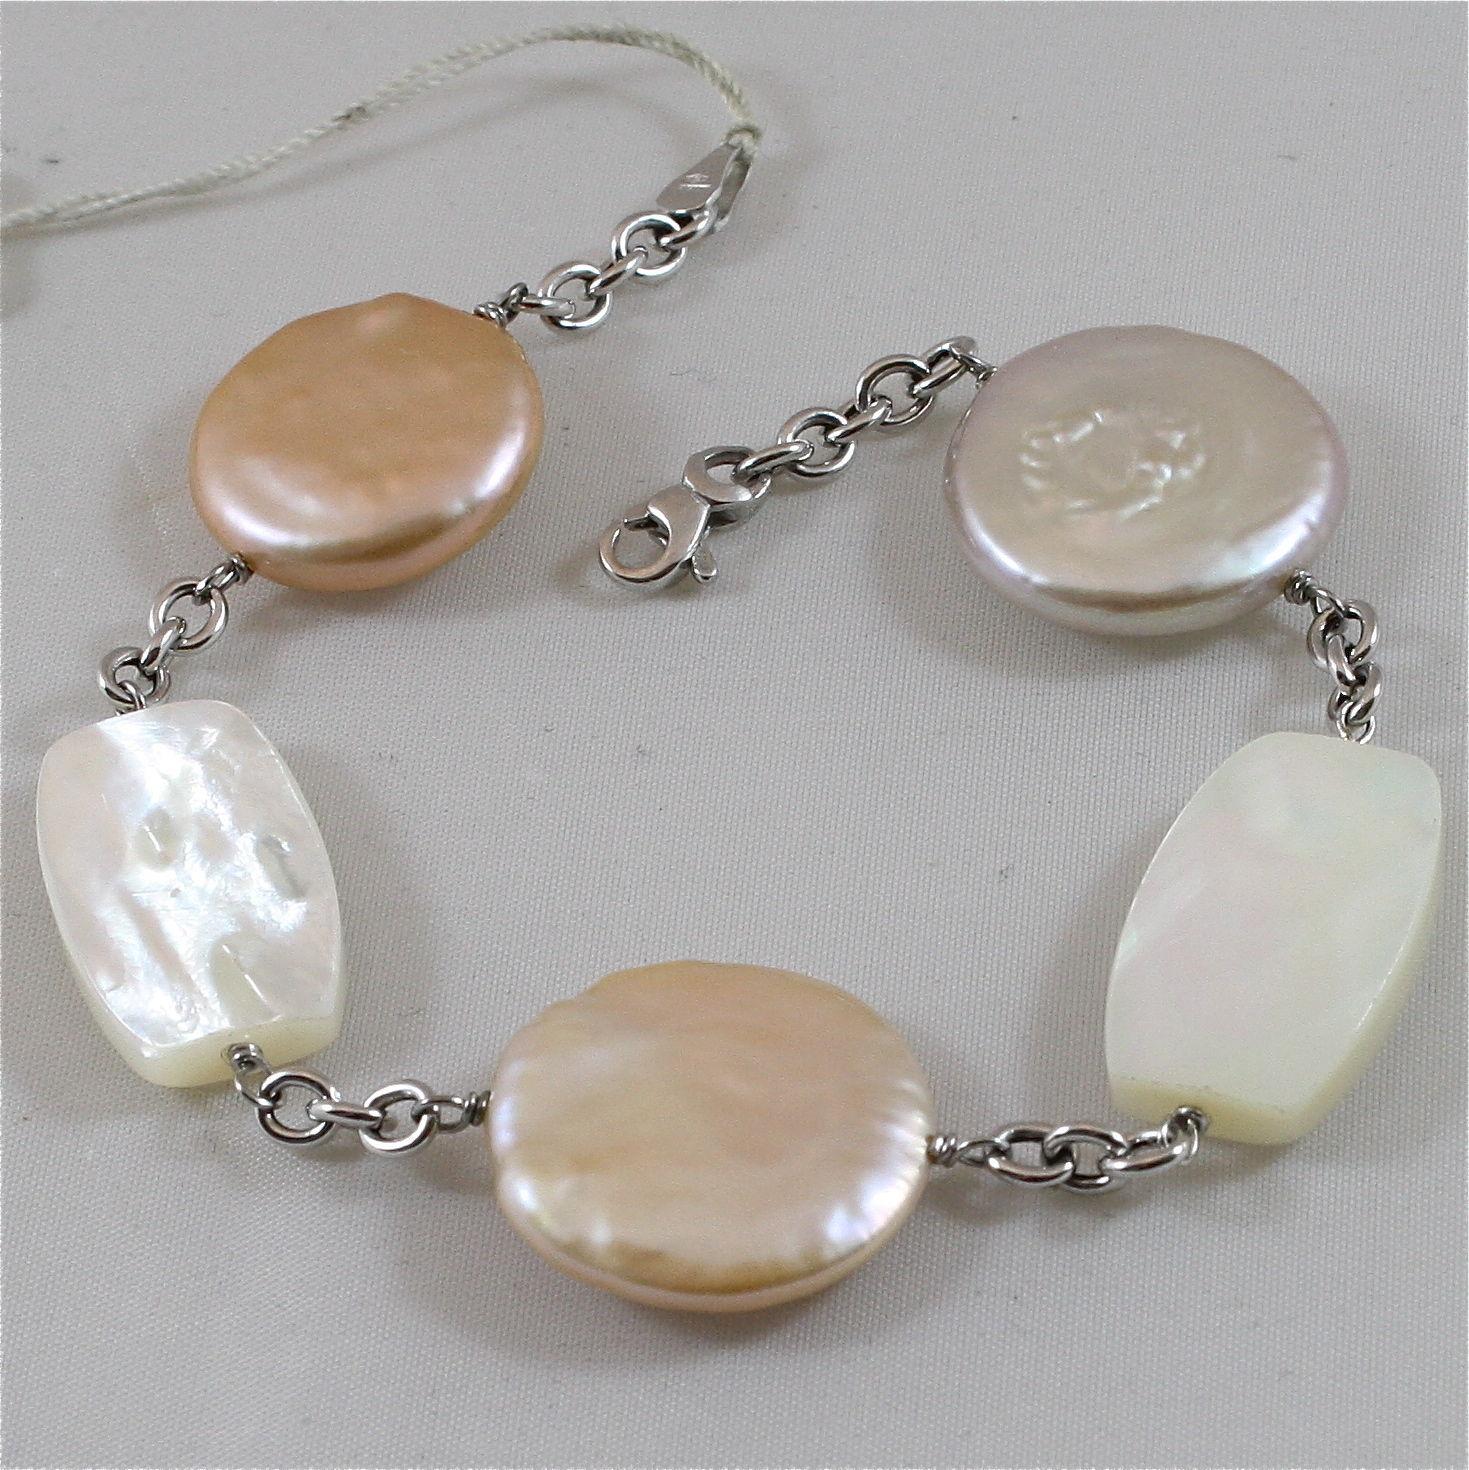 18K WHITE GOLD BRACELET WITH MOTHER OF PEARL AND PEARL DISC, MADE IN ITALY